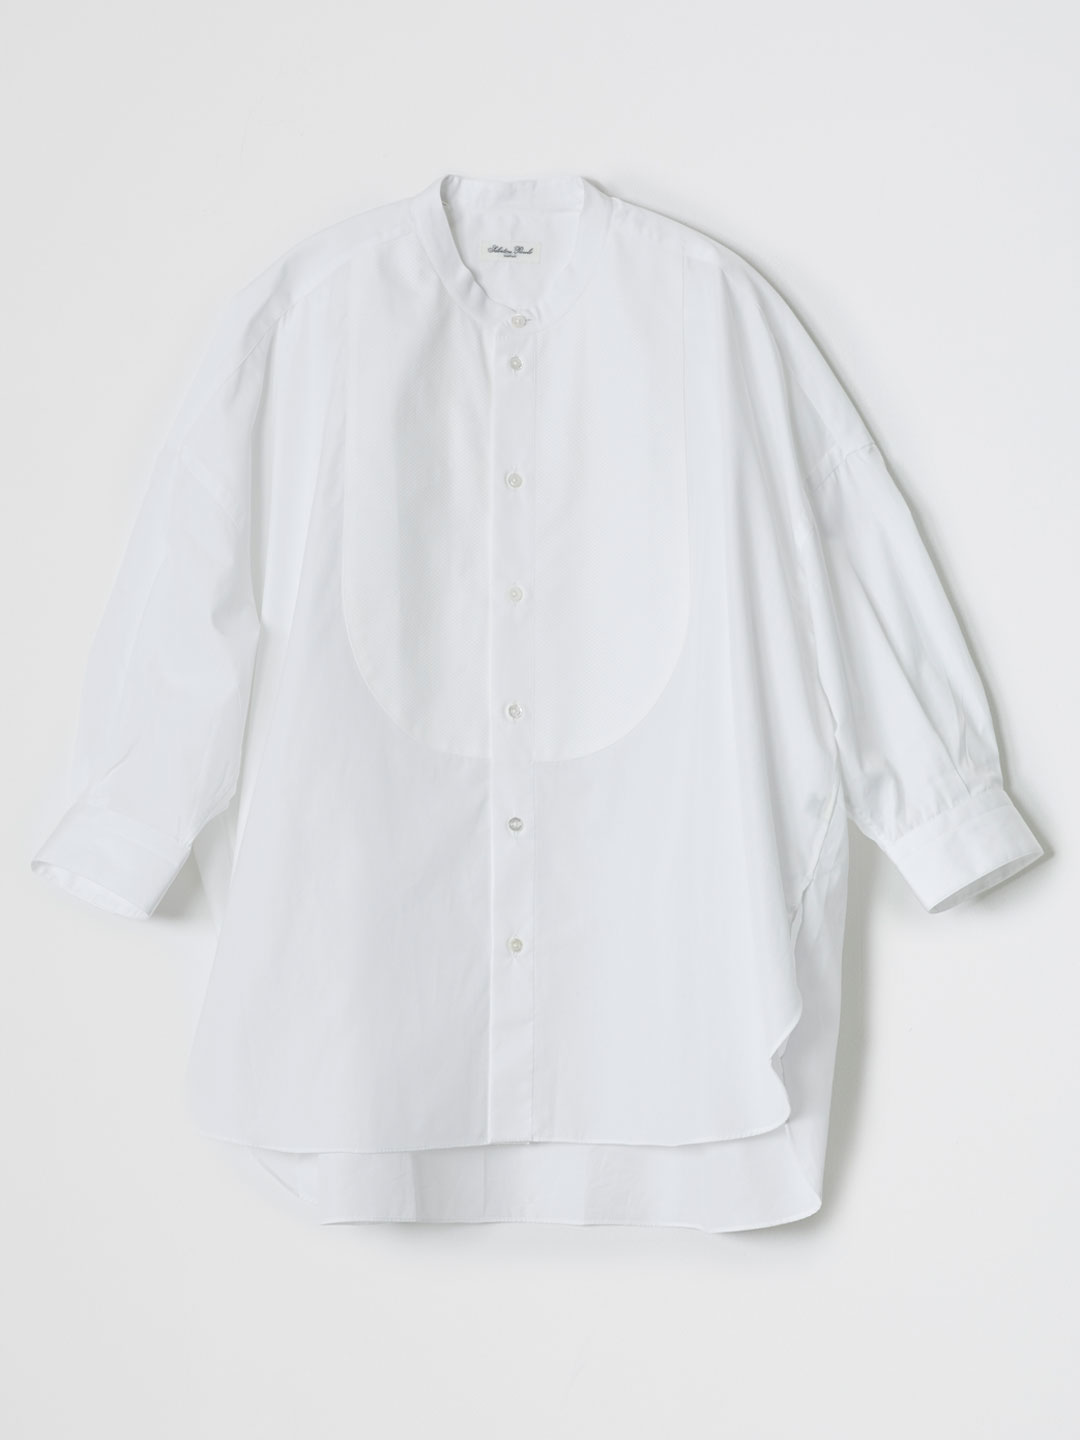 MONICA SMOCKING Shirt - White